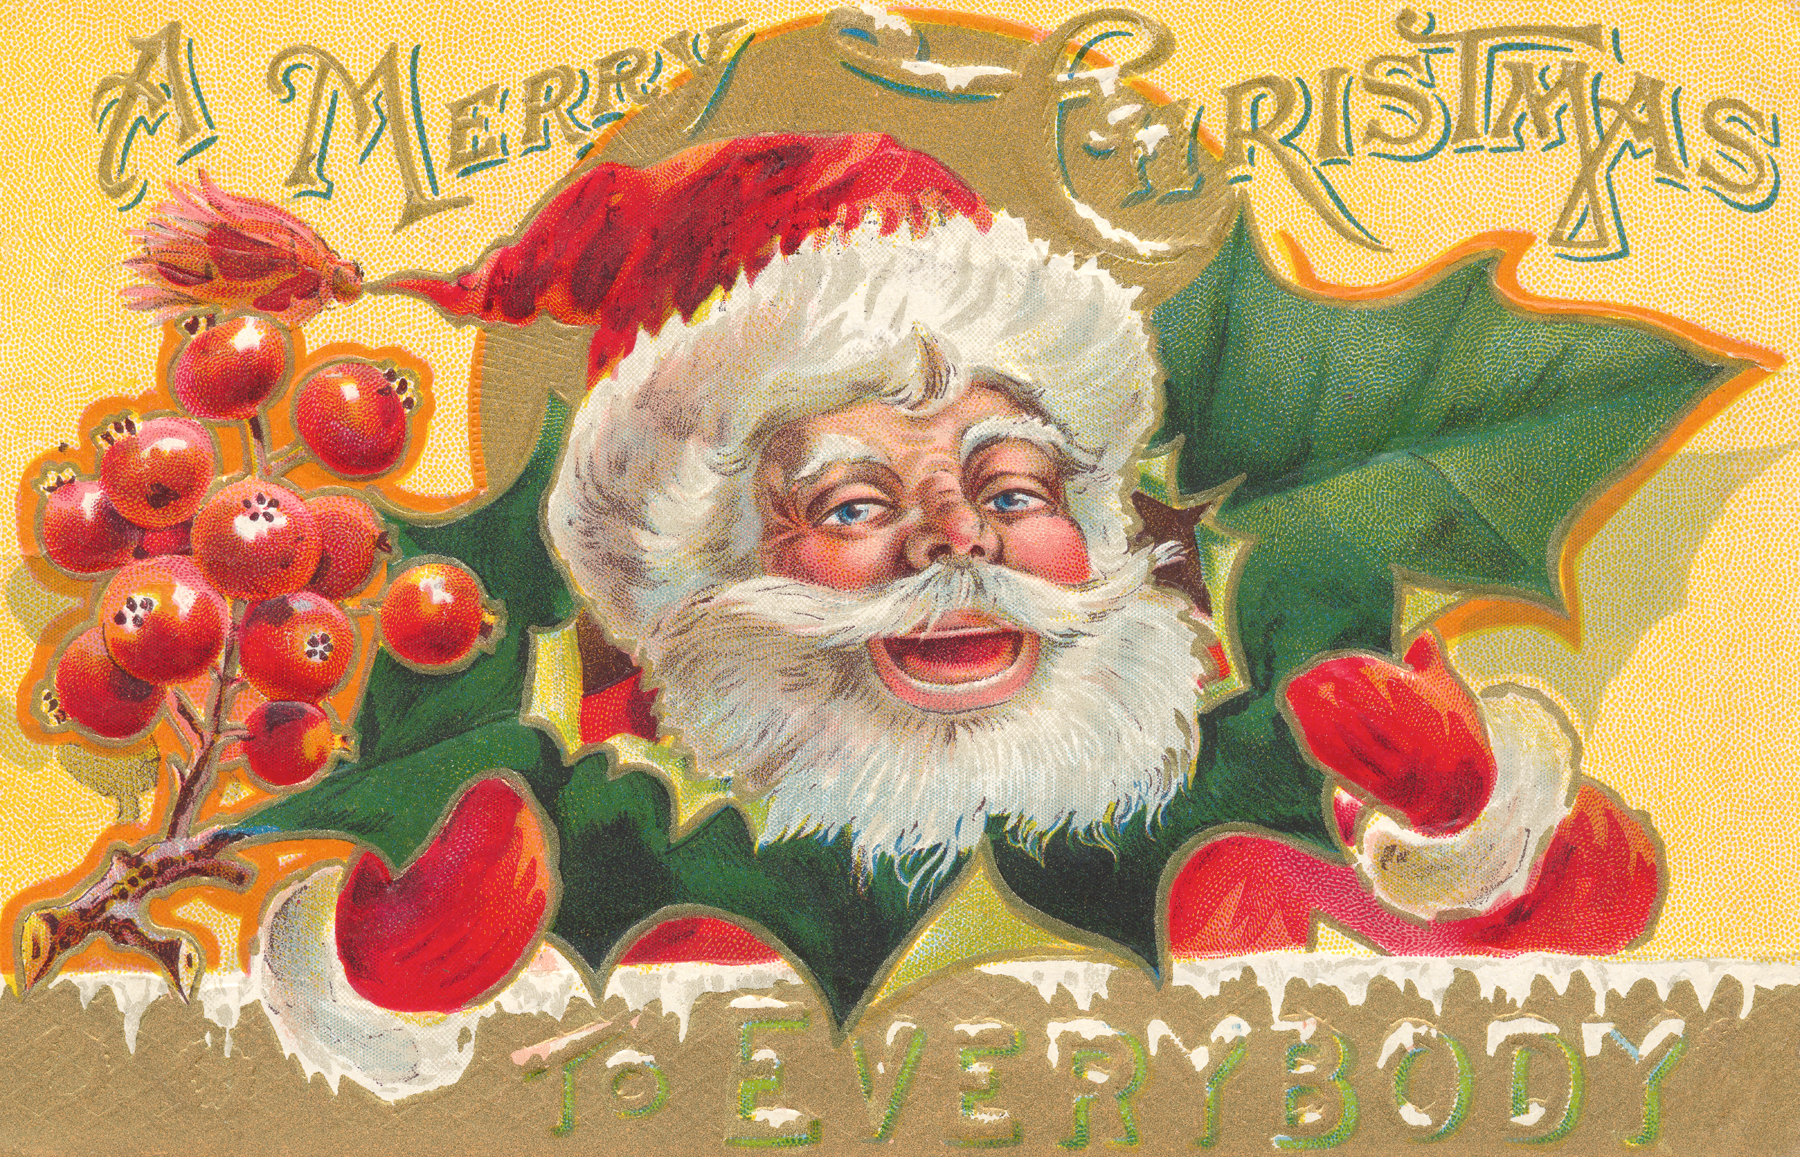 Antique Christmas Card, 1911, Mouth, Page, Ornate, HQ Photo